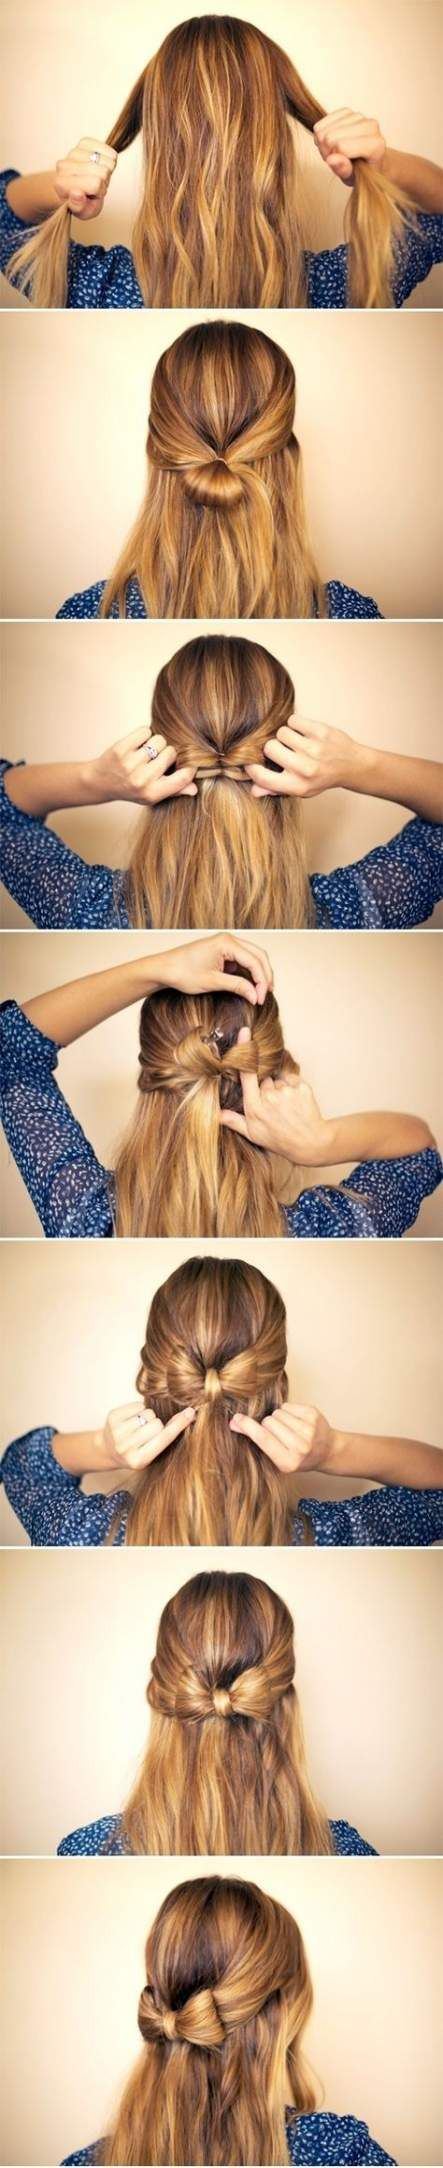 Holiday party hairstyles simple hair colors 42+ ideas